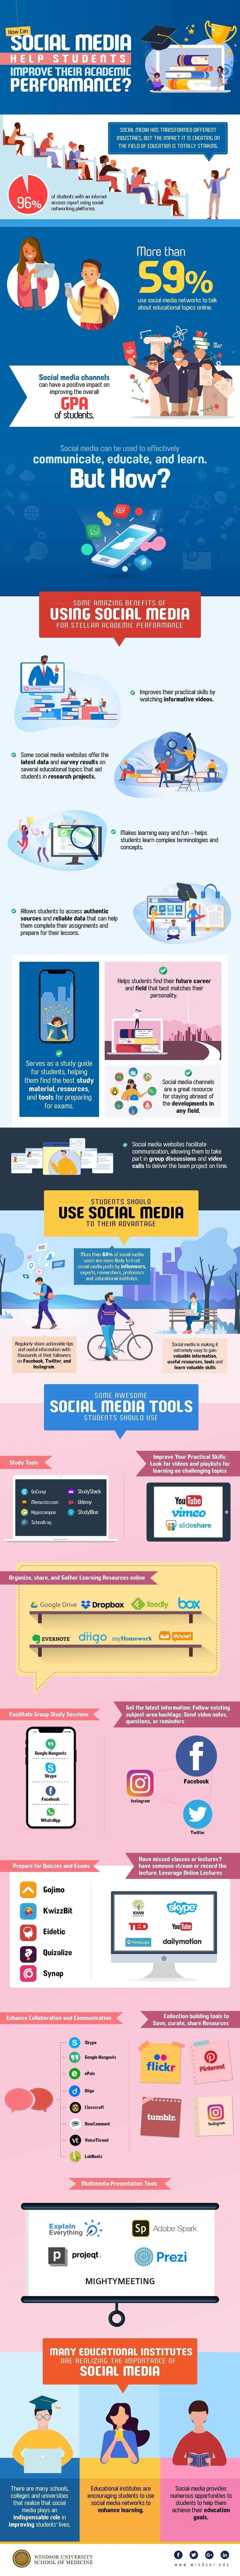 How can learners enhance their social media academic performance? #infographic #Social Media #Student #Education